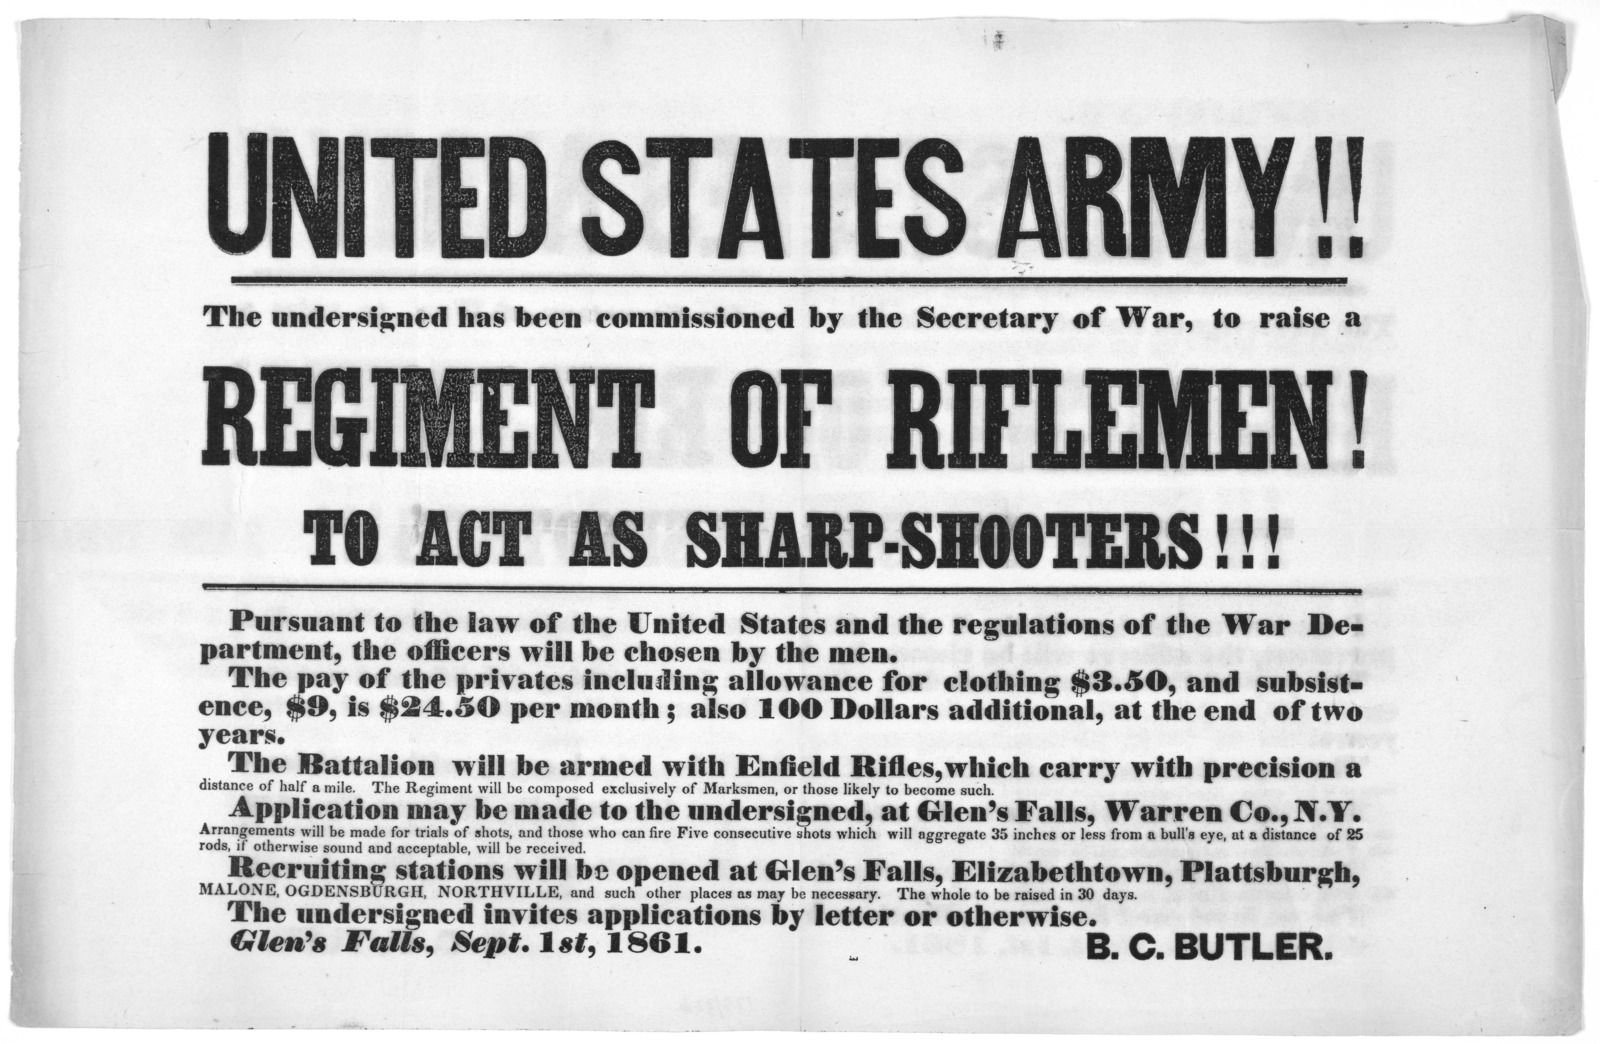 United States army!! The undersigned has been commissioned by the Secretary of war, to raise a regiment of riflemen! to act as sharp-shooters!!! ... B. C. Butler. Glen's Falls, Sept. 1st, 1861.